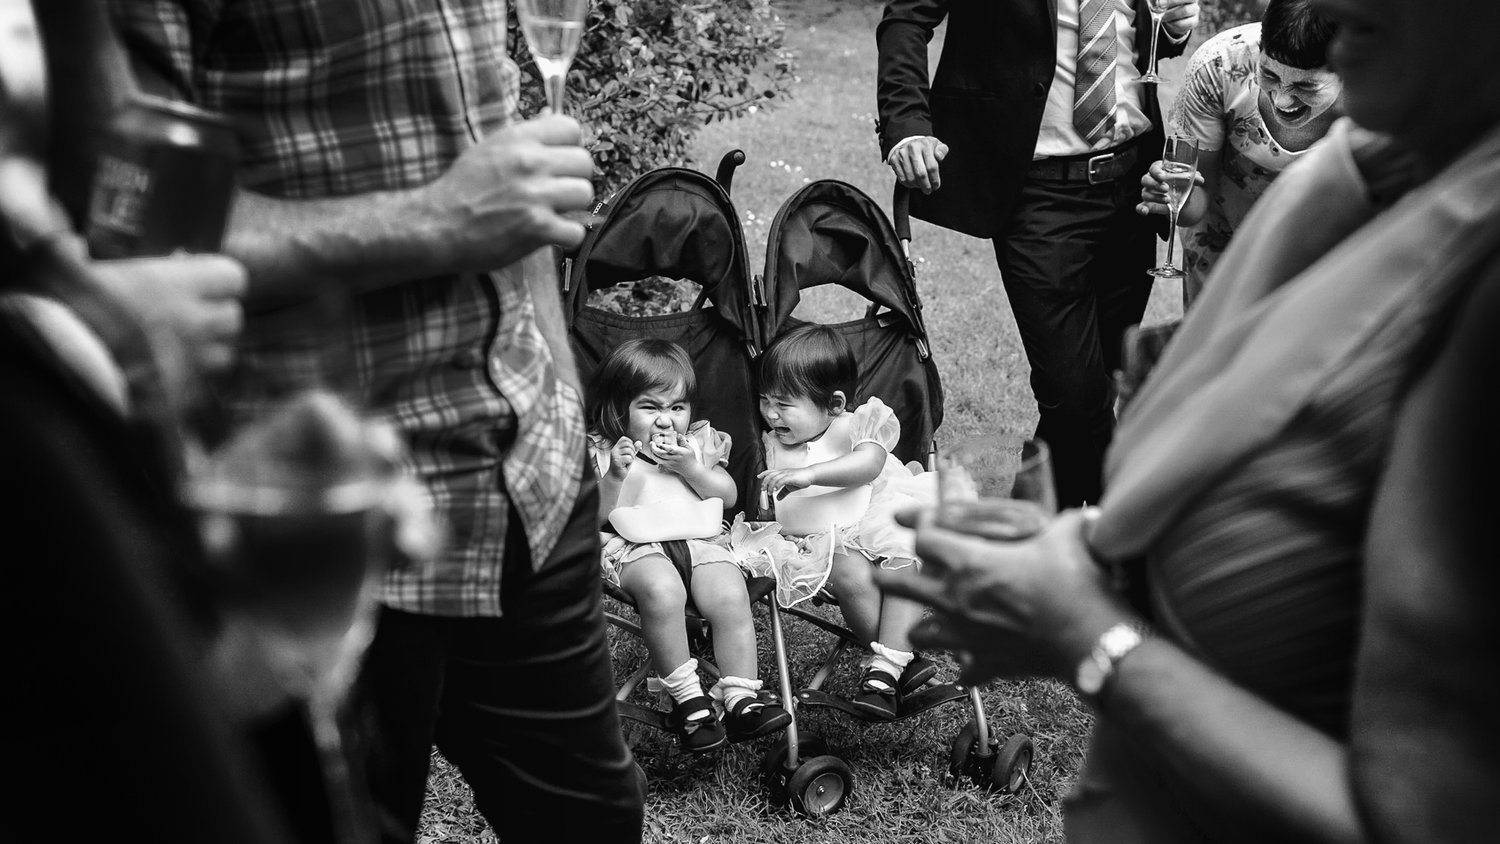 Toddlers at a wedding